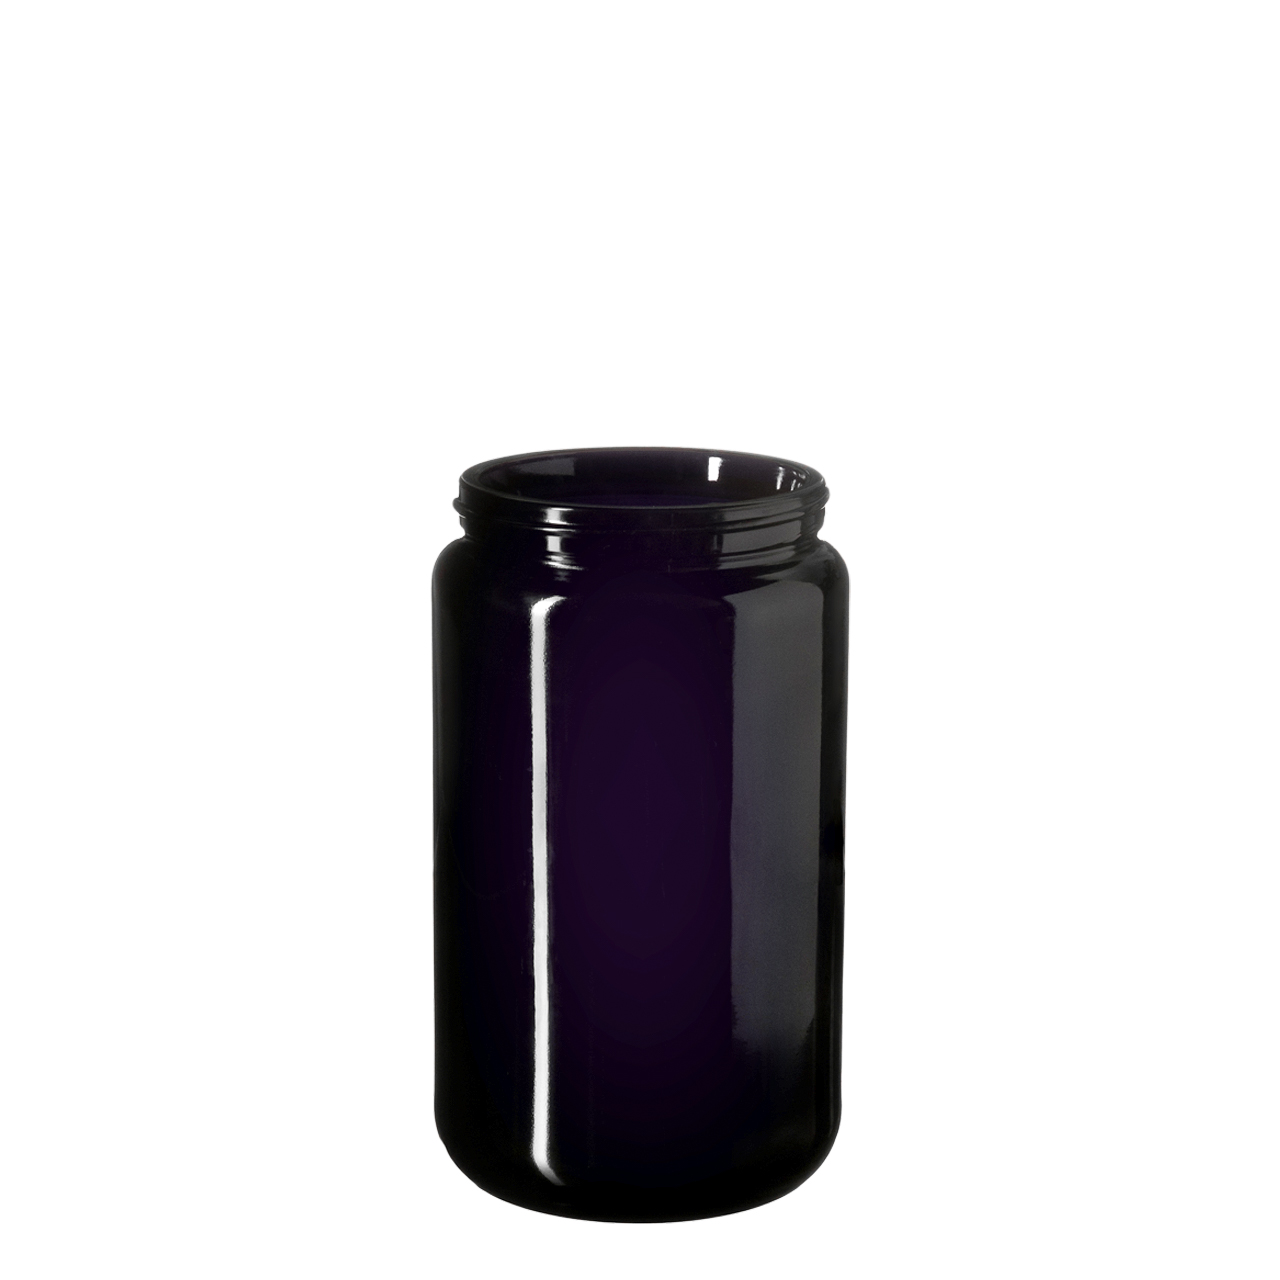 Wide neck jar Saturn 400 ml, Miron, 70/400 thread